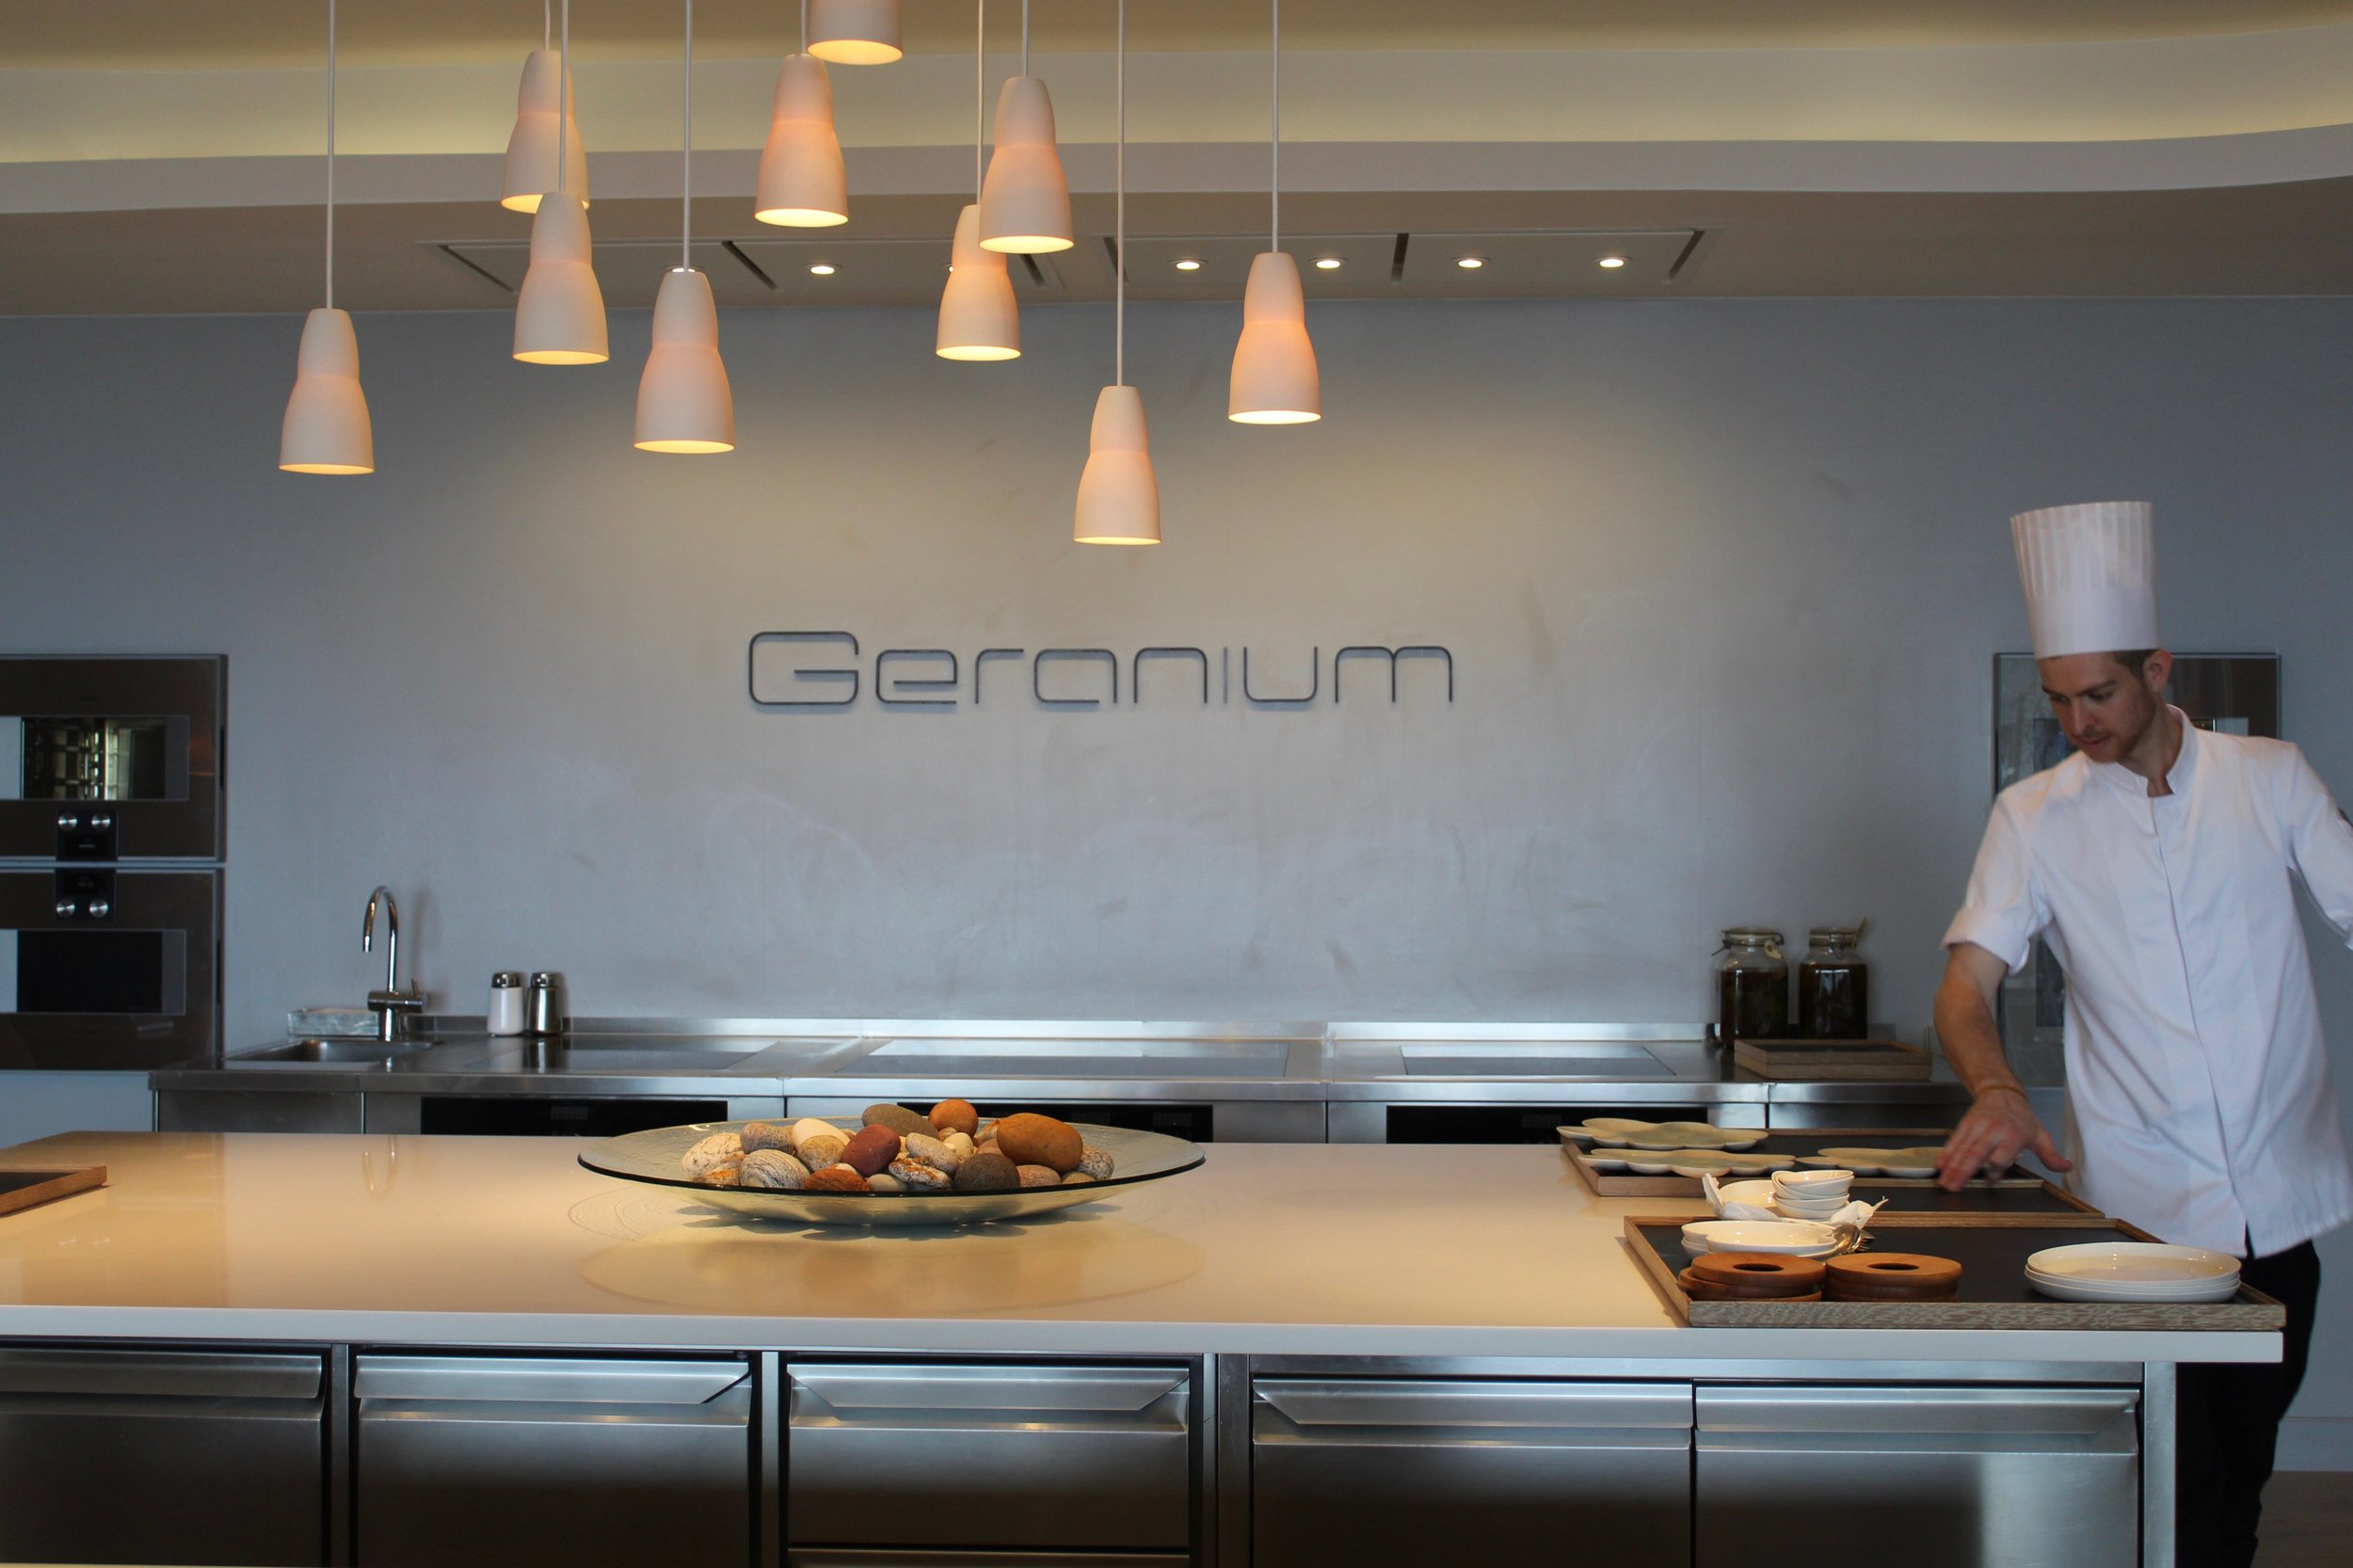 Go to Geranium, one of the top restaurants in the world, for a truly gastronomic experience